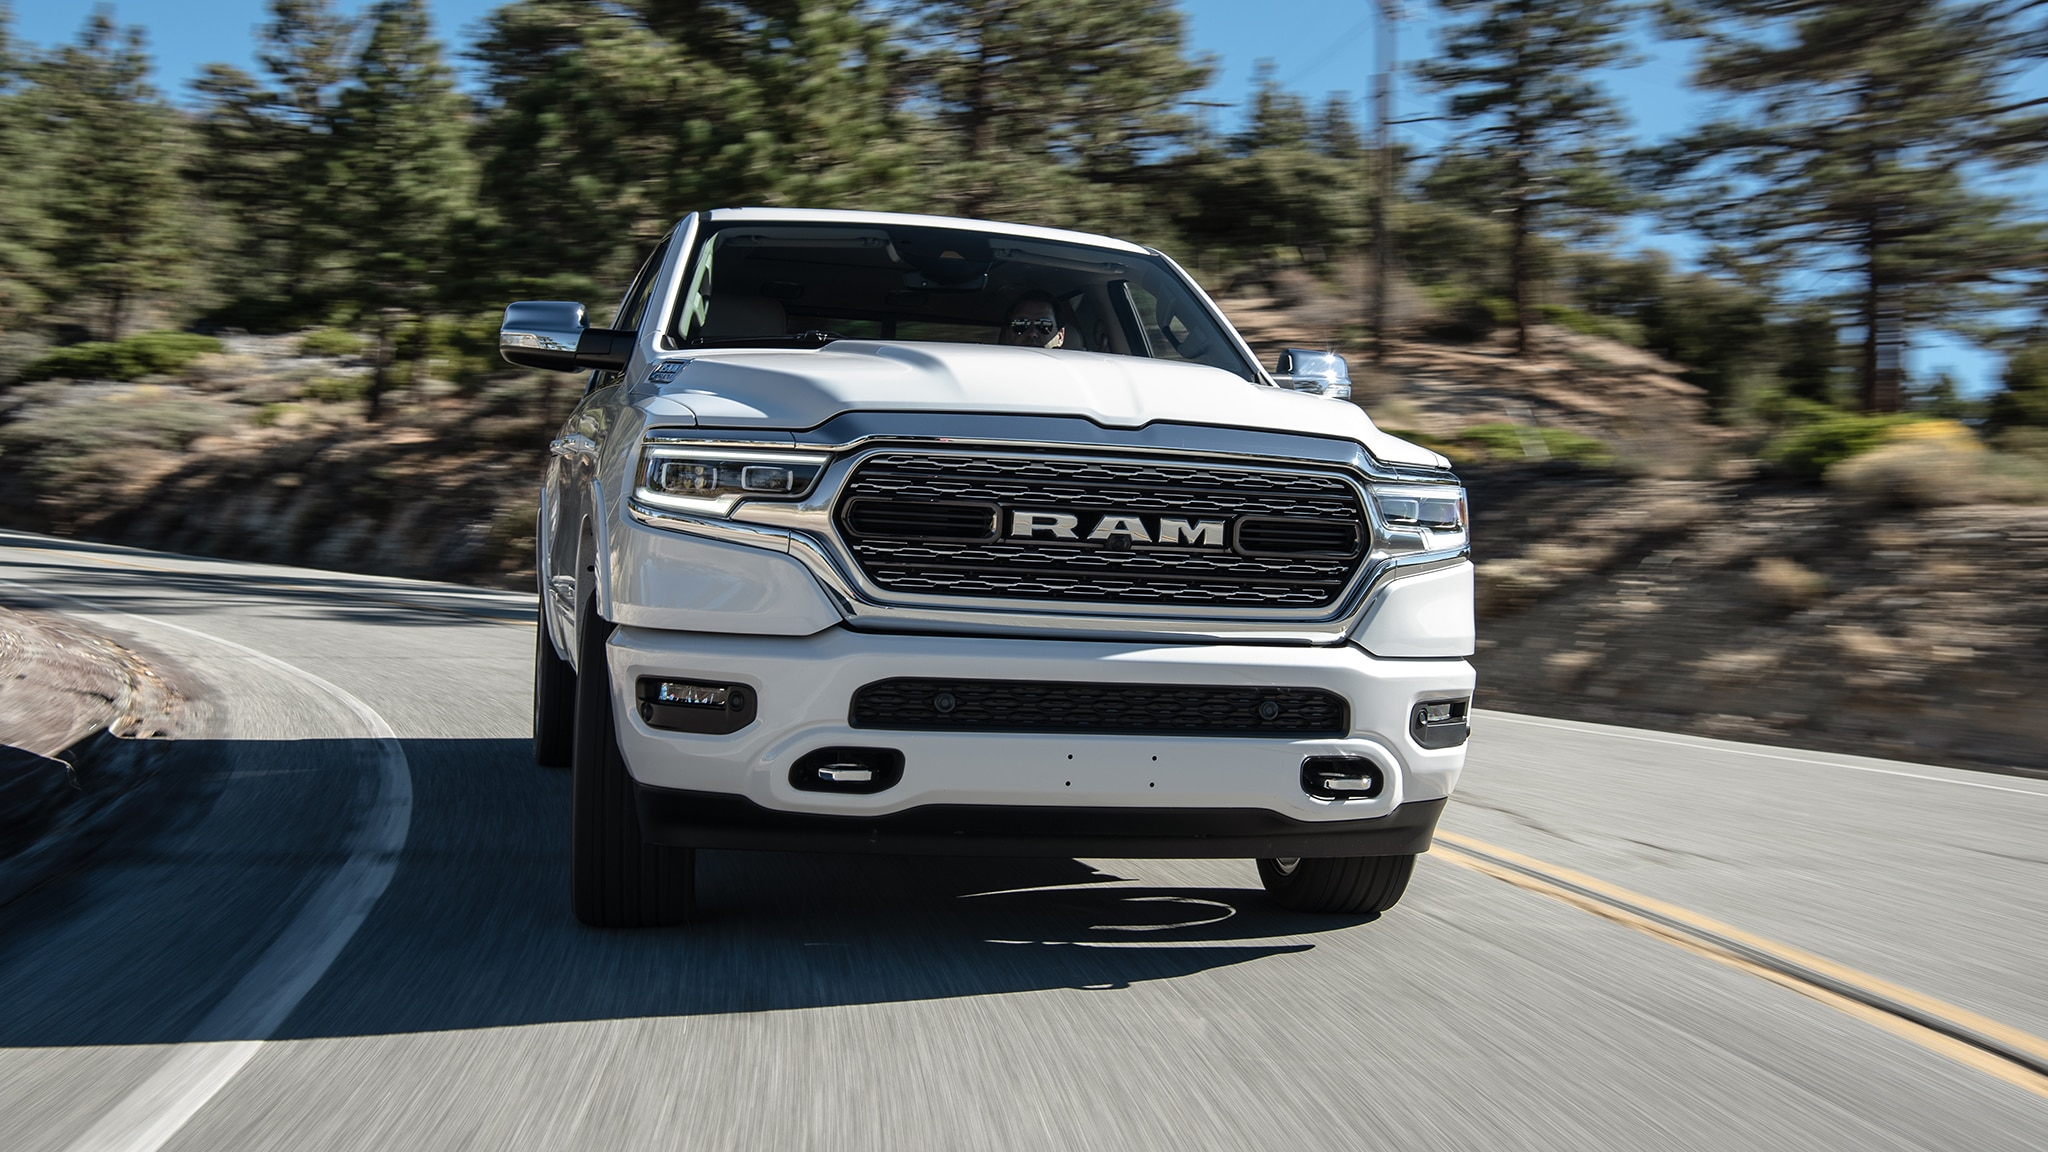 2019 RAM 1500 Limited 4x4 Front In Motion